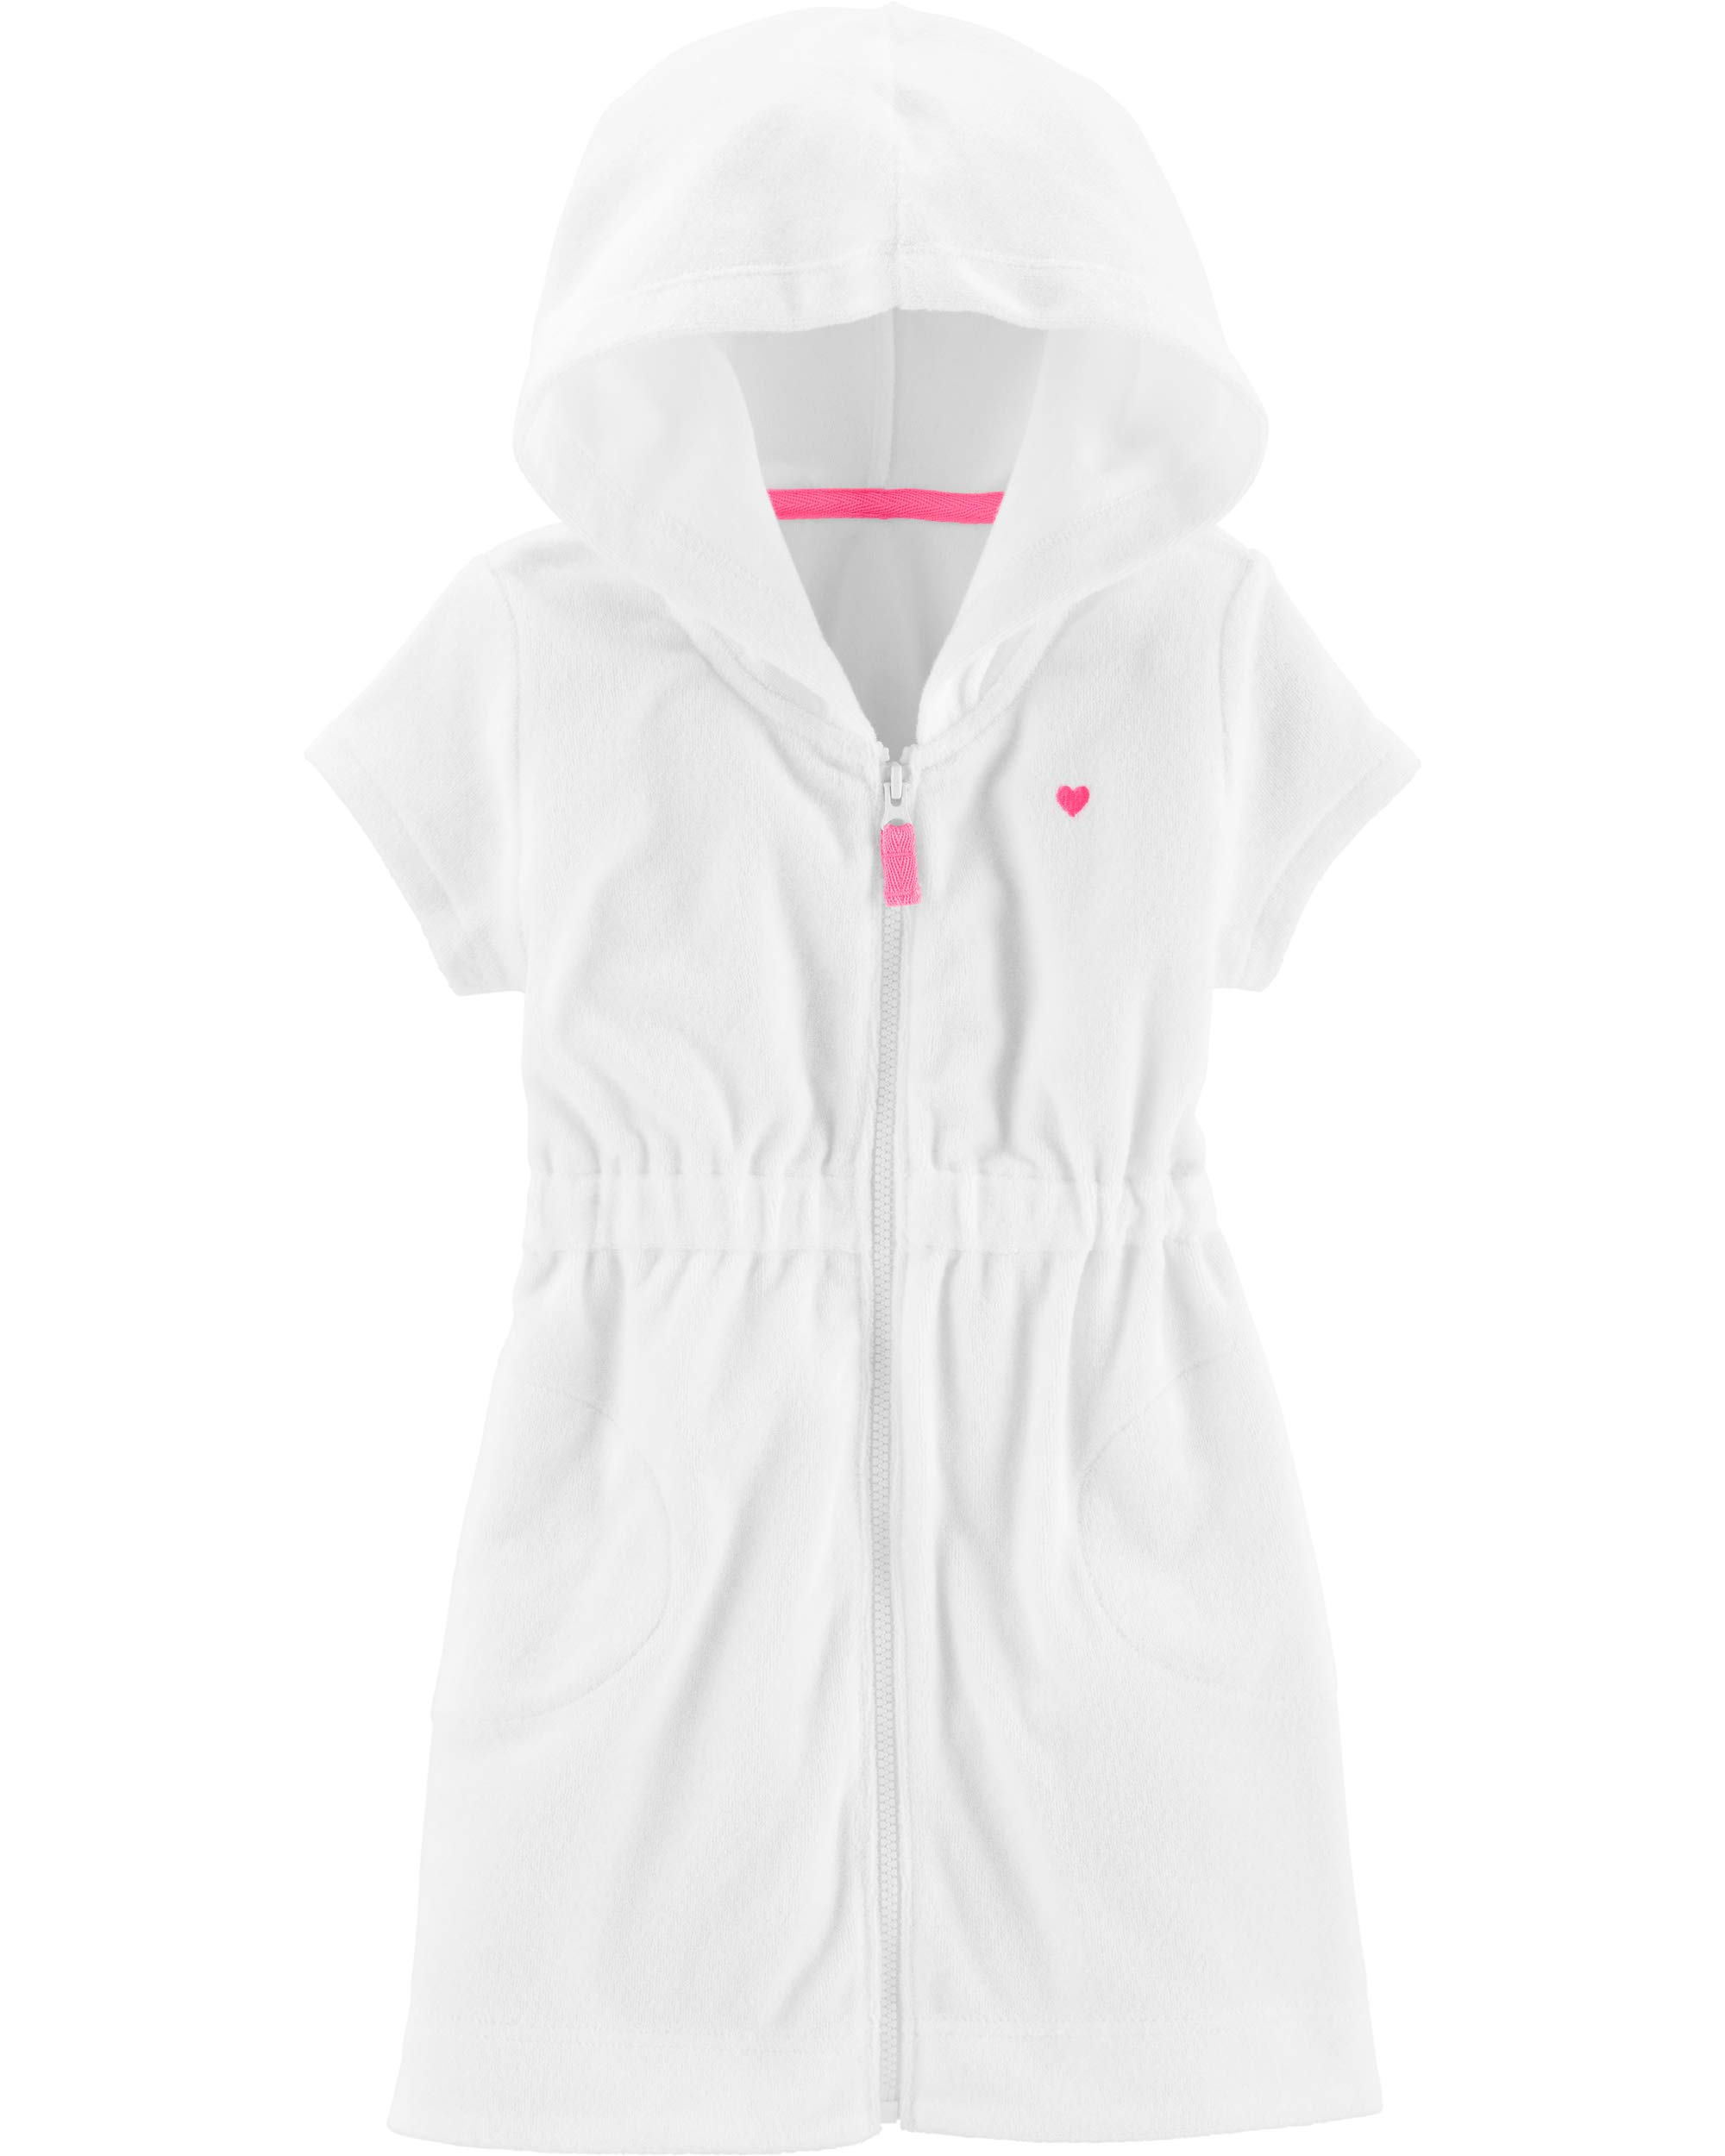 Carter's Baby Girls Terry Swim Cover Up, White, 24 Months by Carter's